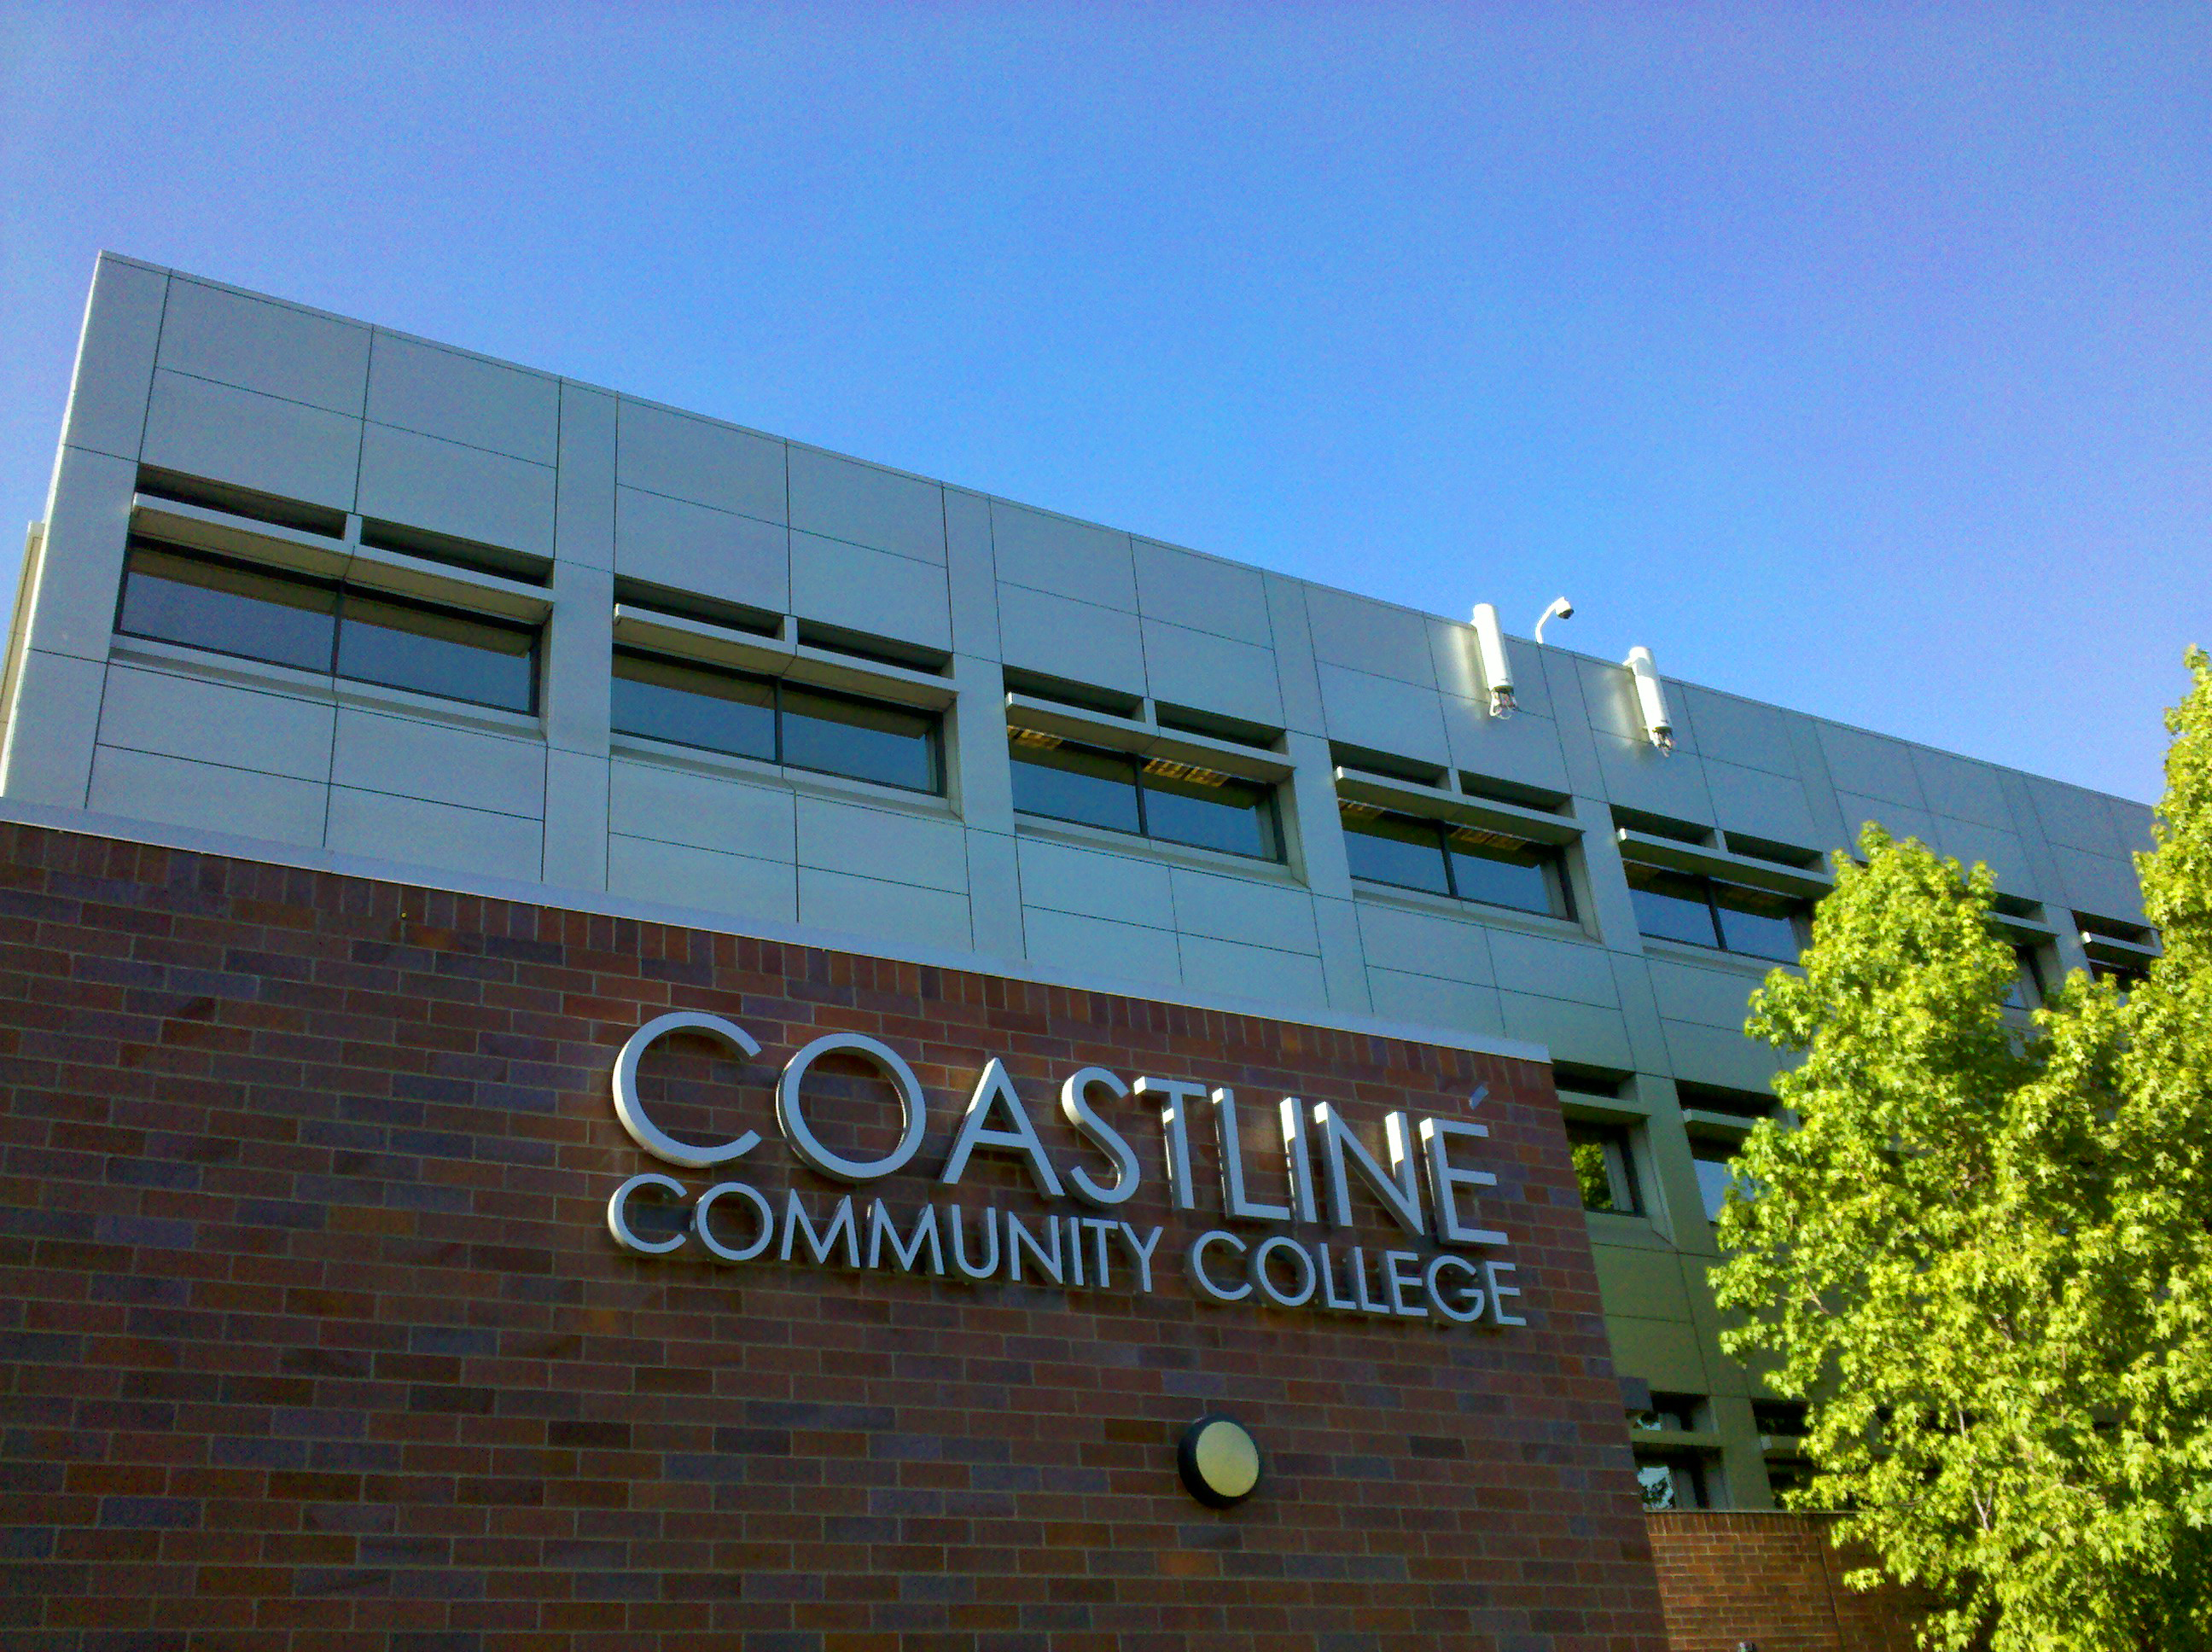 coastline community college seaport